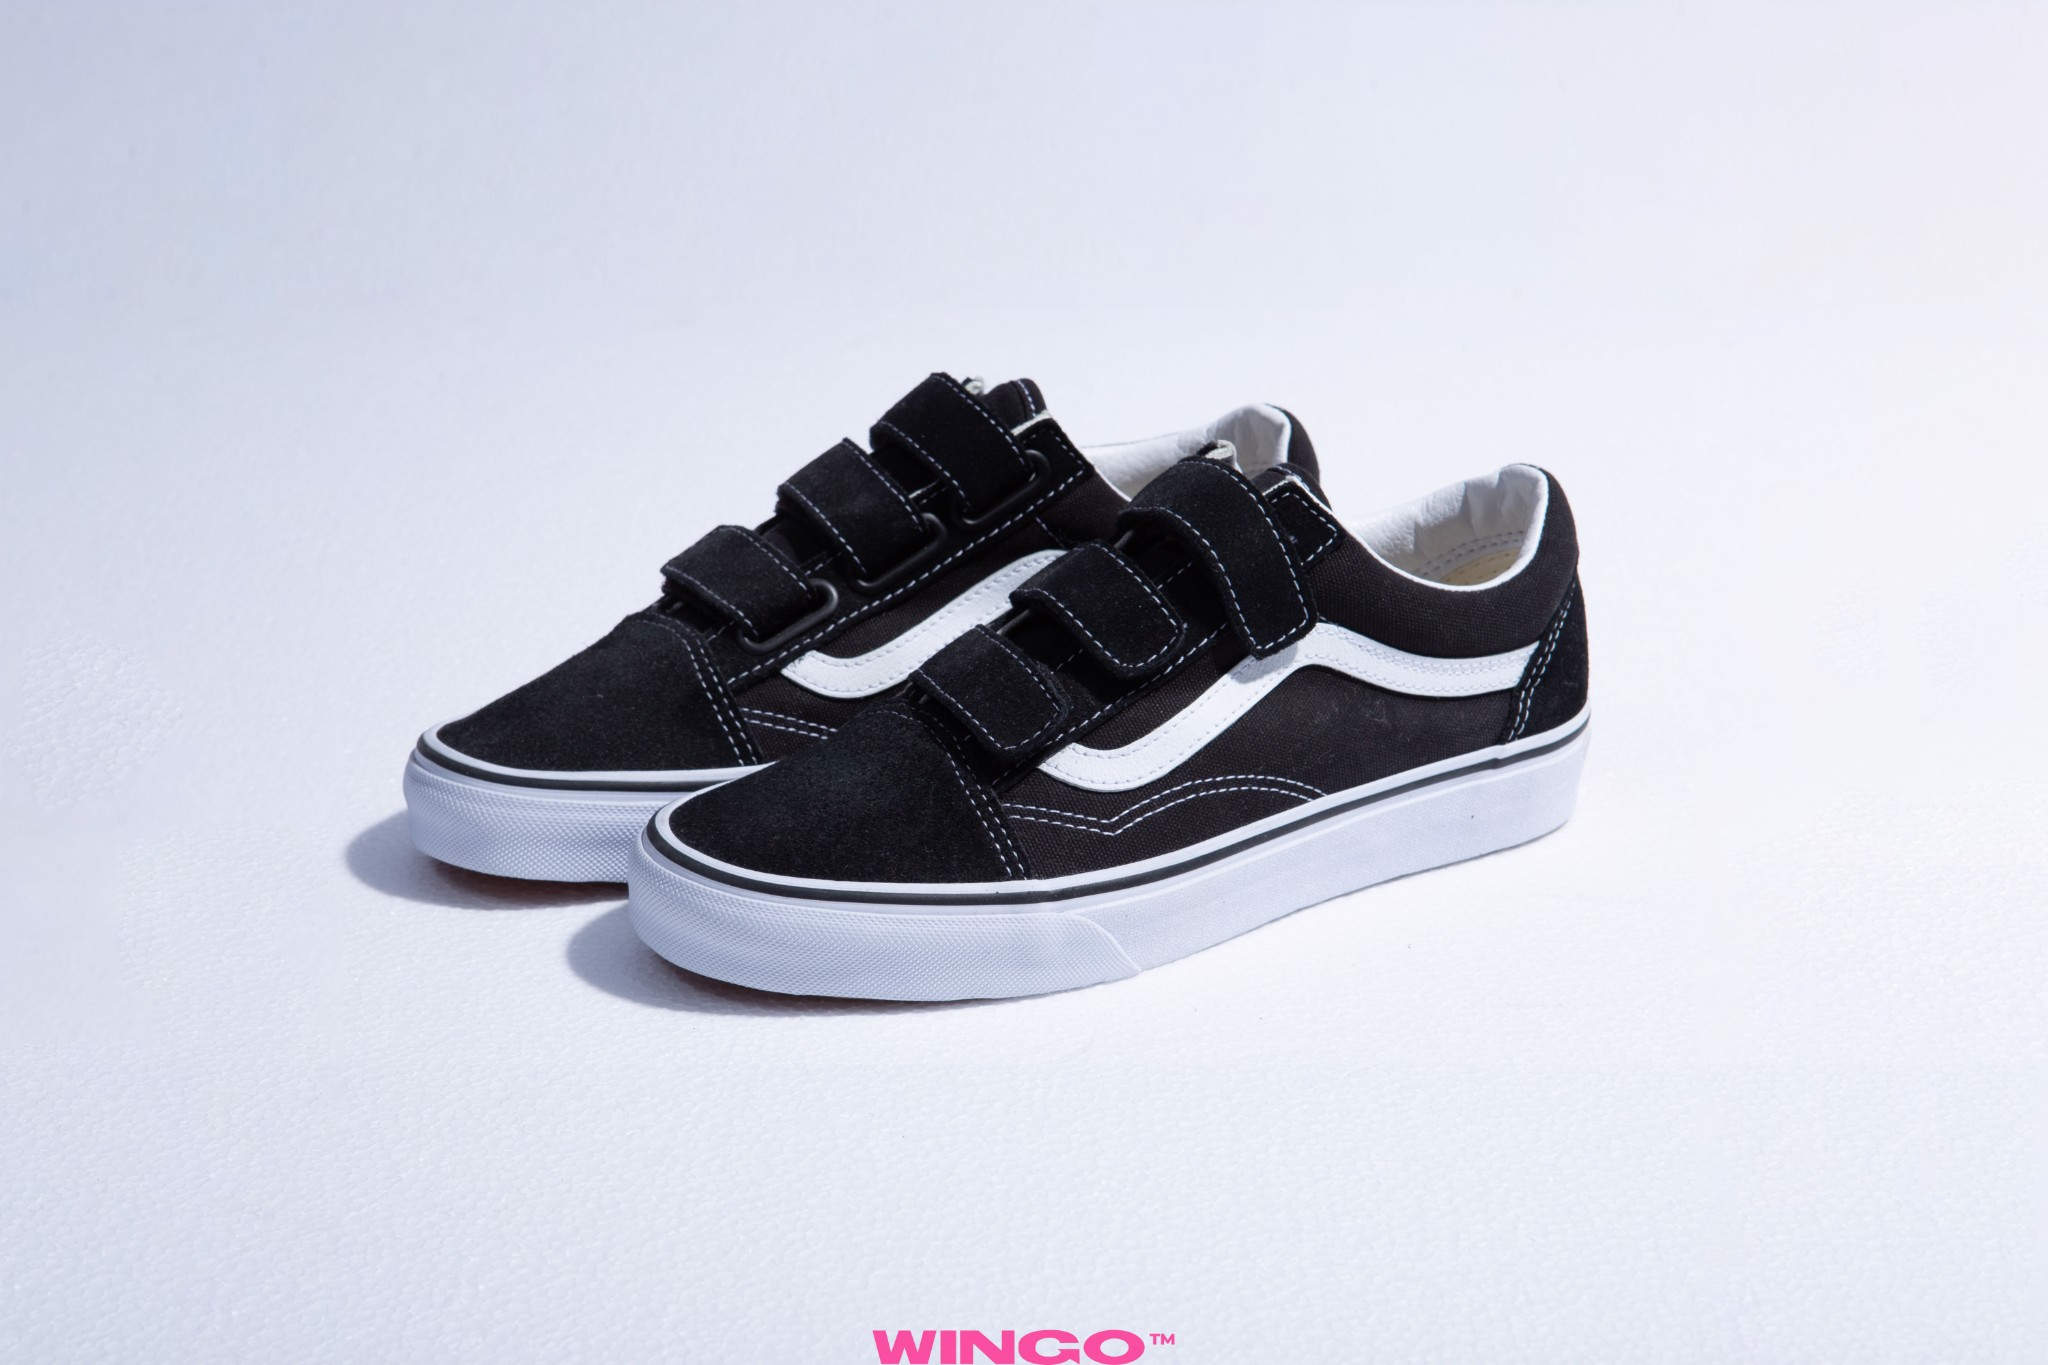 Vans Old Skool V Strap Black